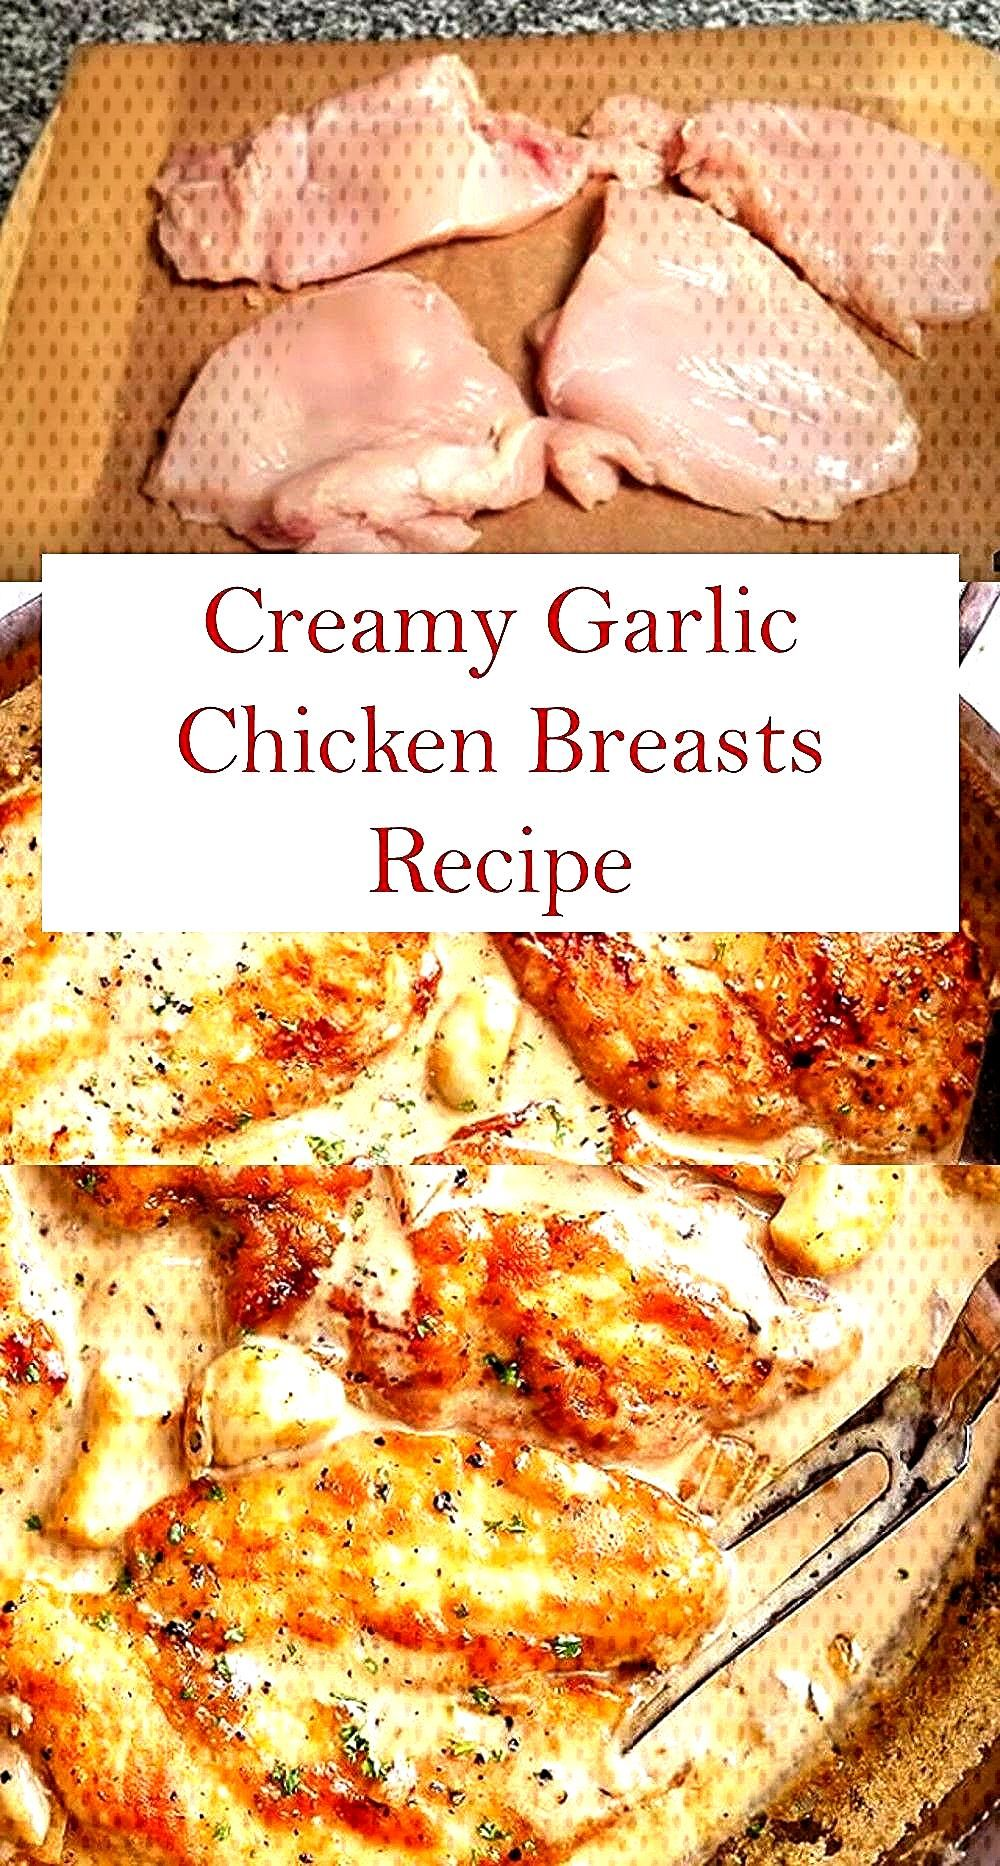 This is The Best, Healthy and Easy Creamy Garlic Chicken Breasts Recipe. This Creamy Garlic Chicken